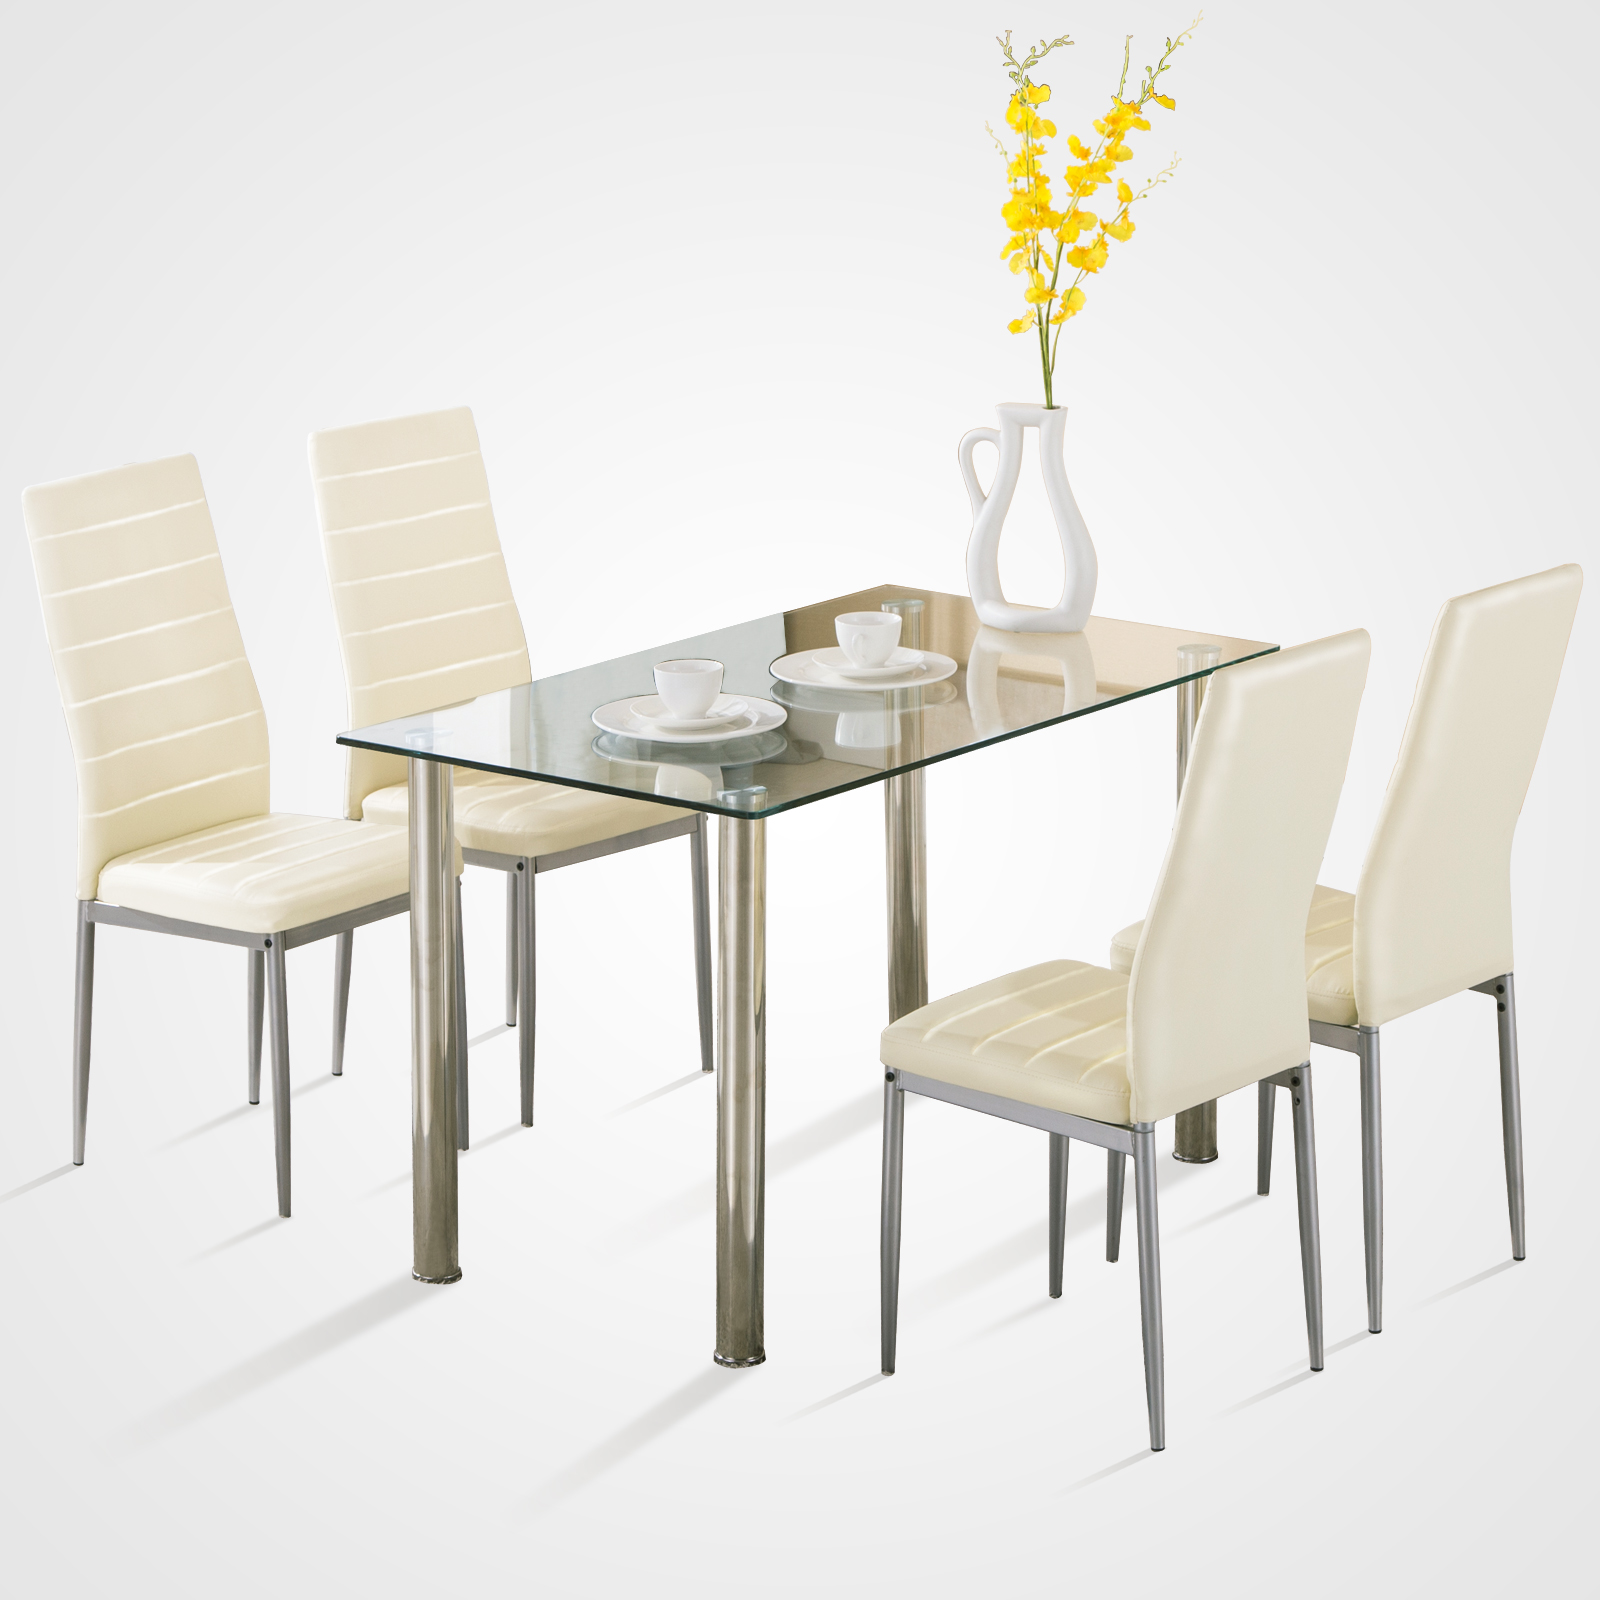 5 piece dining table set w 4 chairs glass metal kitchen room breakfast furniture ebay. Black Bedroom Furniture Sets. Home Design Ideas